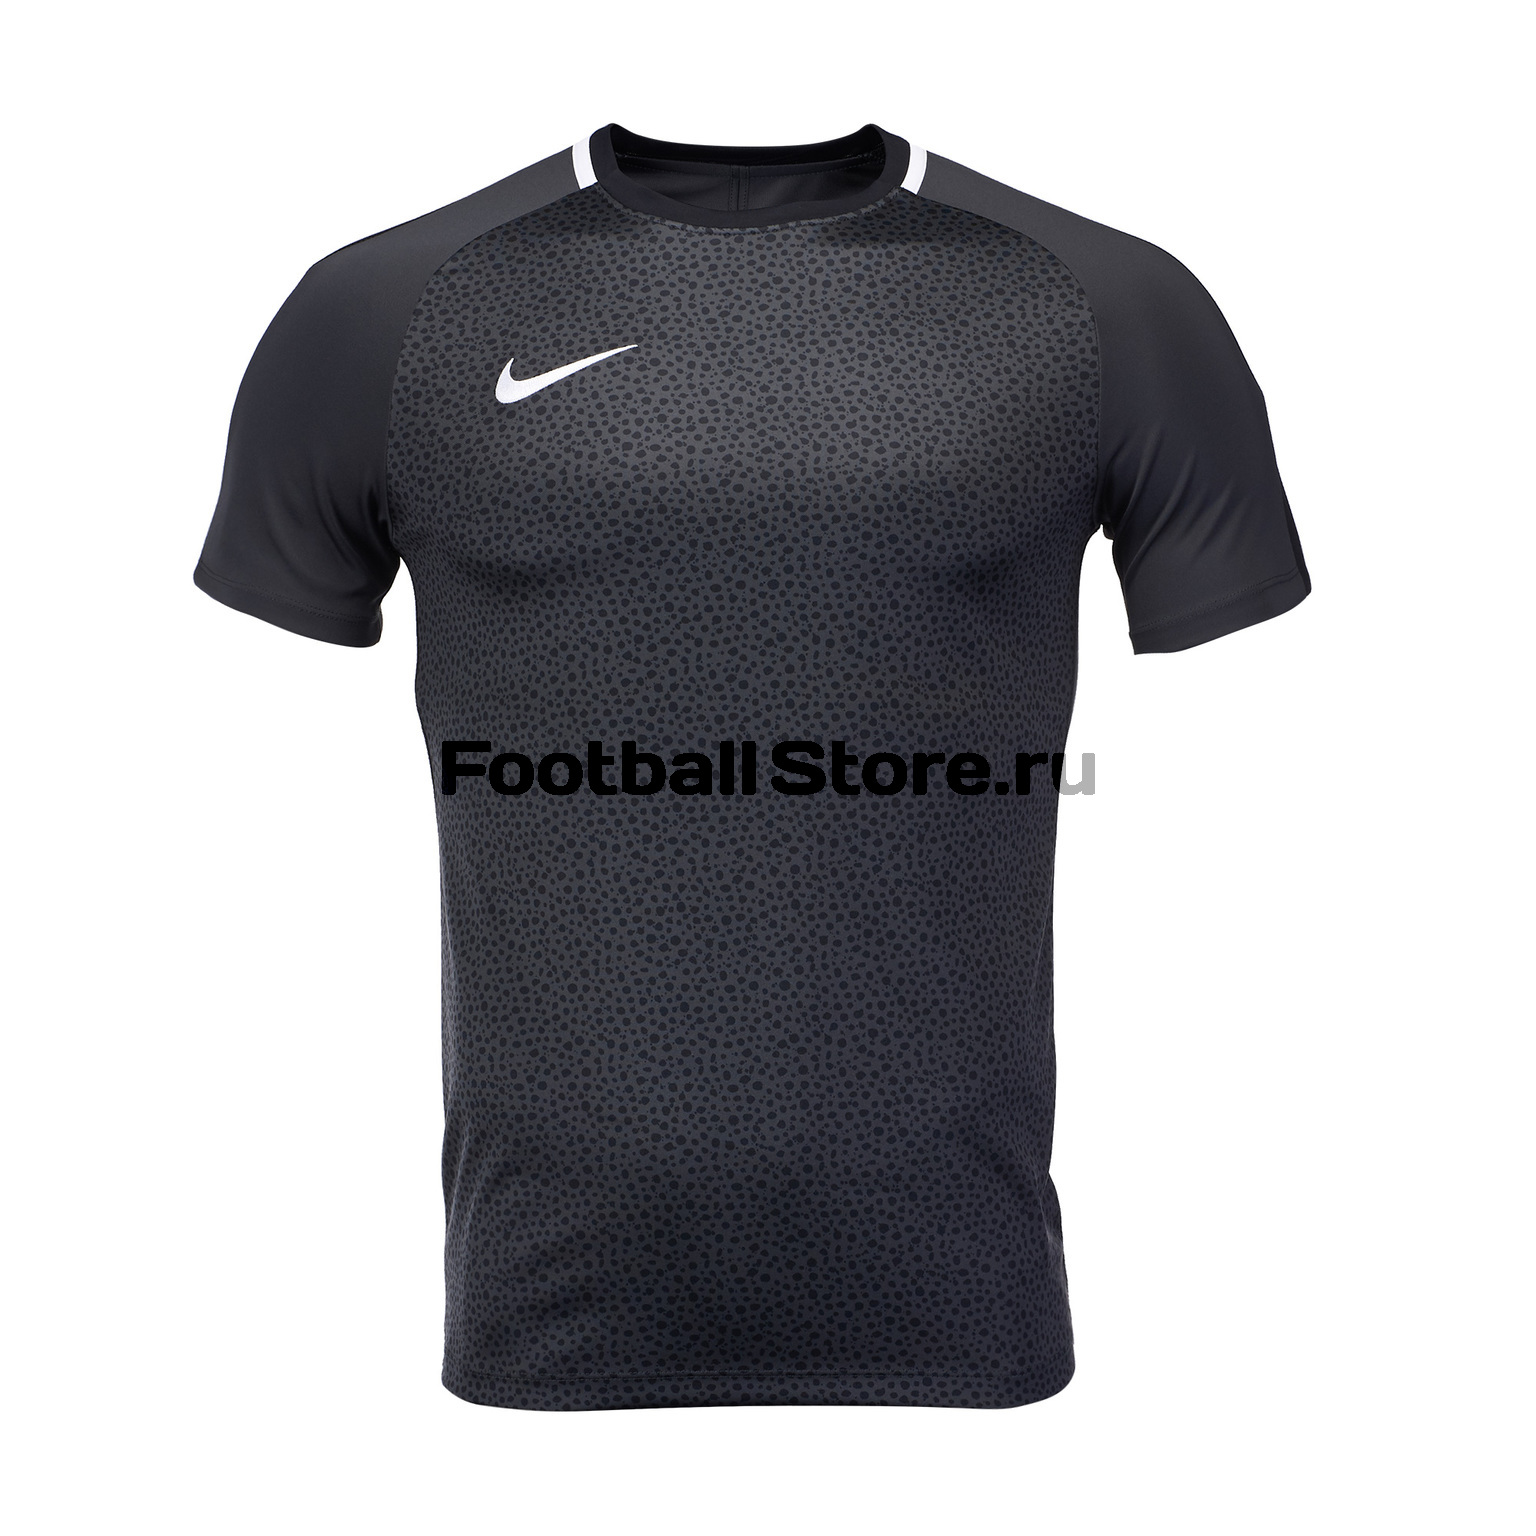 Футболка тренировочная Nike Academy Top SS AJ4231-060 nike vapor pro low d men s detachable football cleats